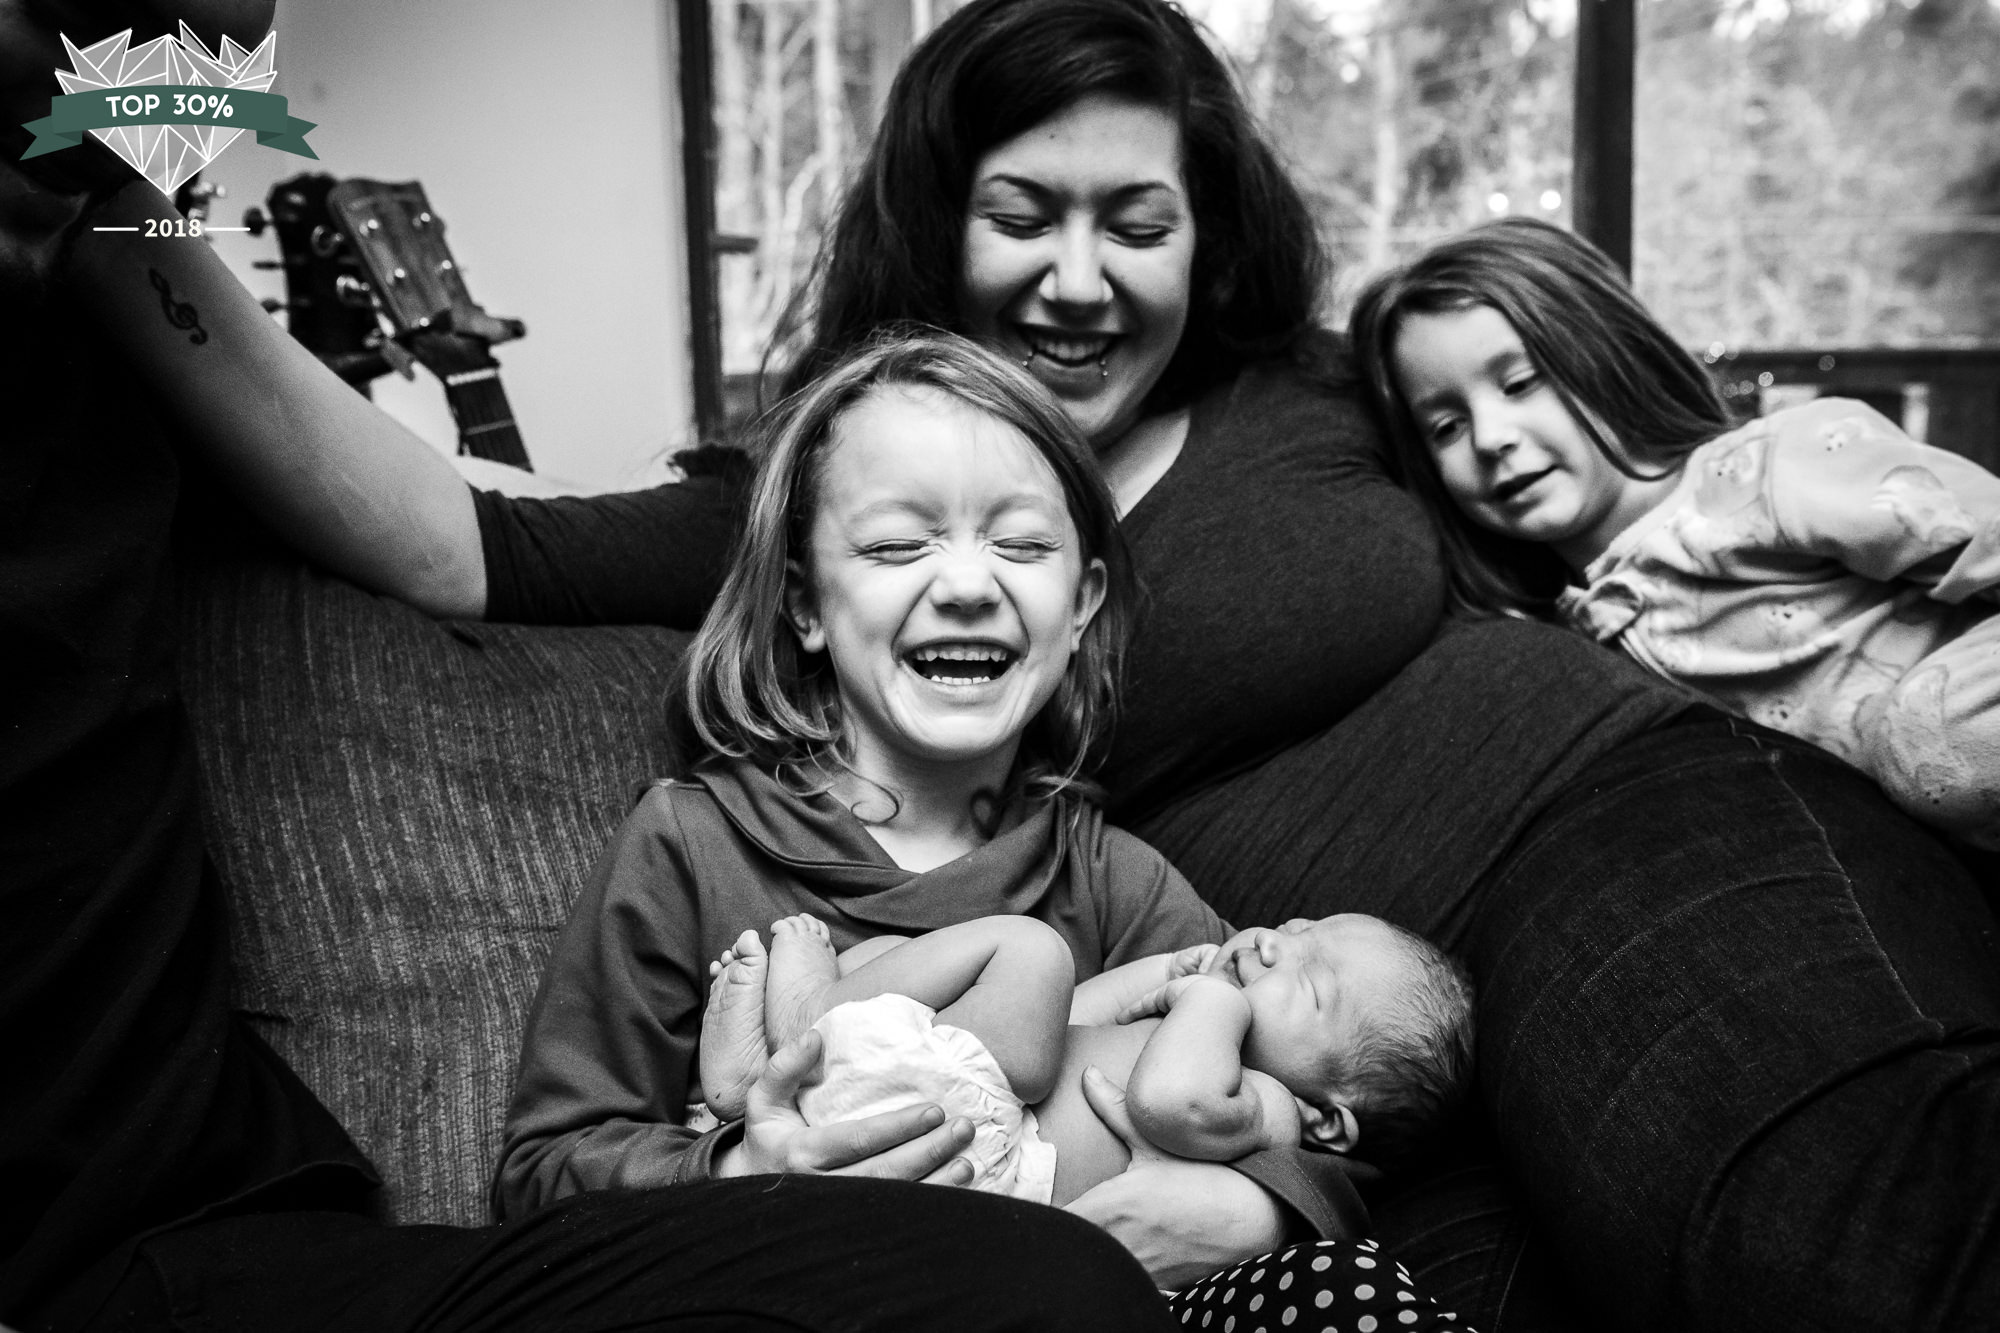 squamish-photographer-birth-baby-newborn-lifestyle-documentary-homebirth-midwife-doula6.jpg